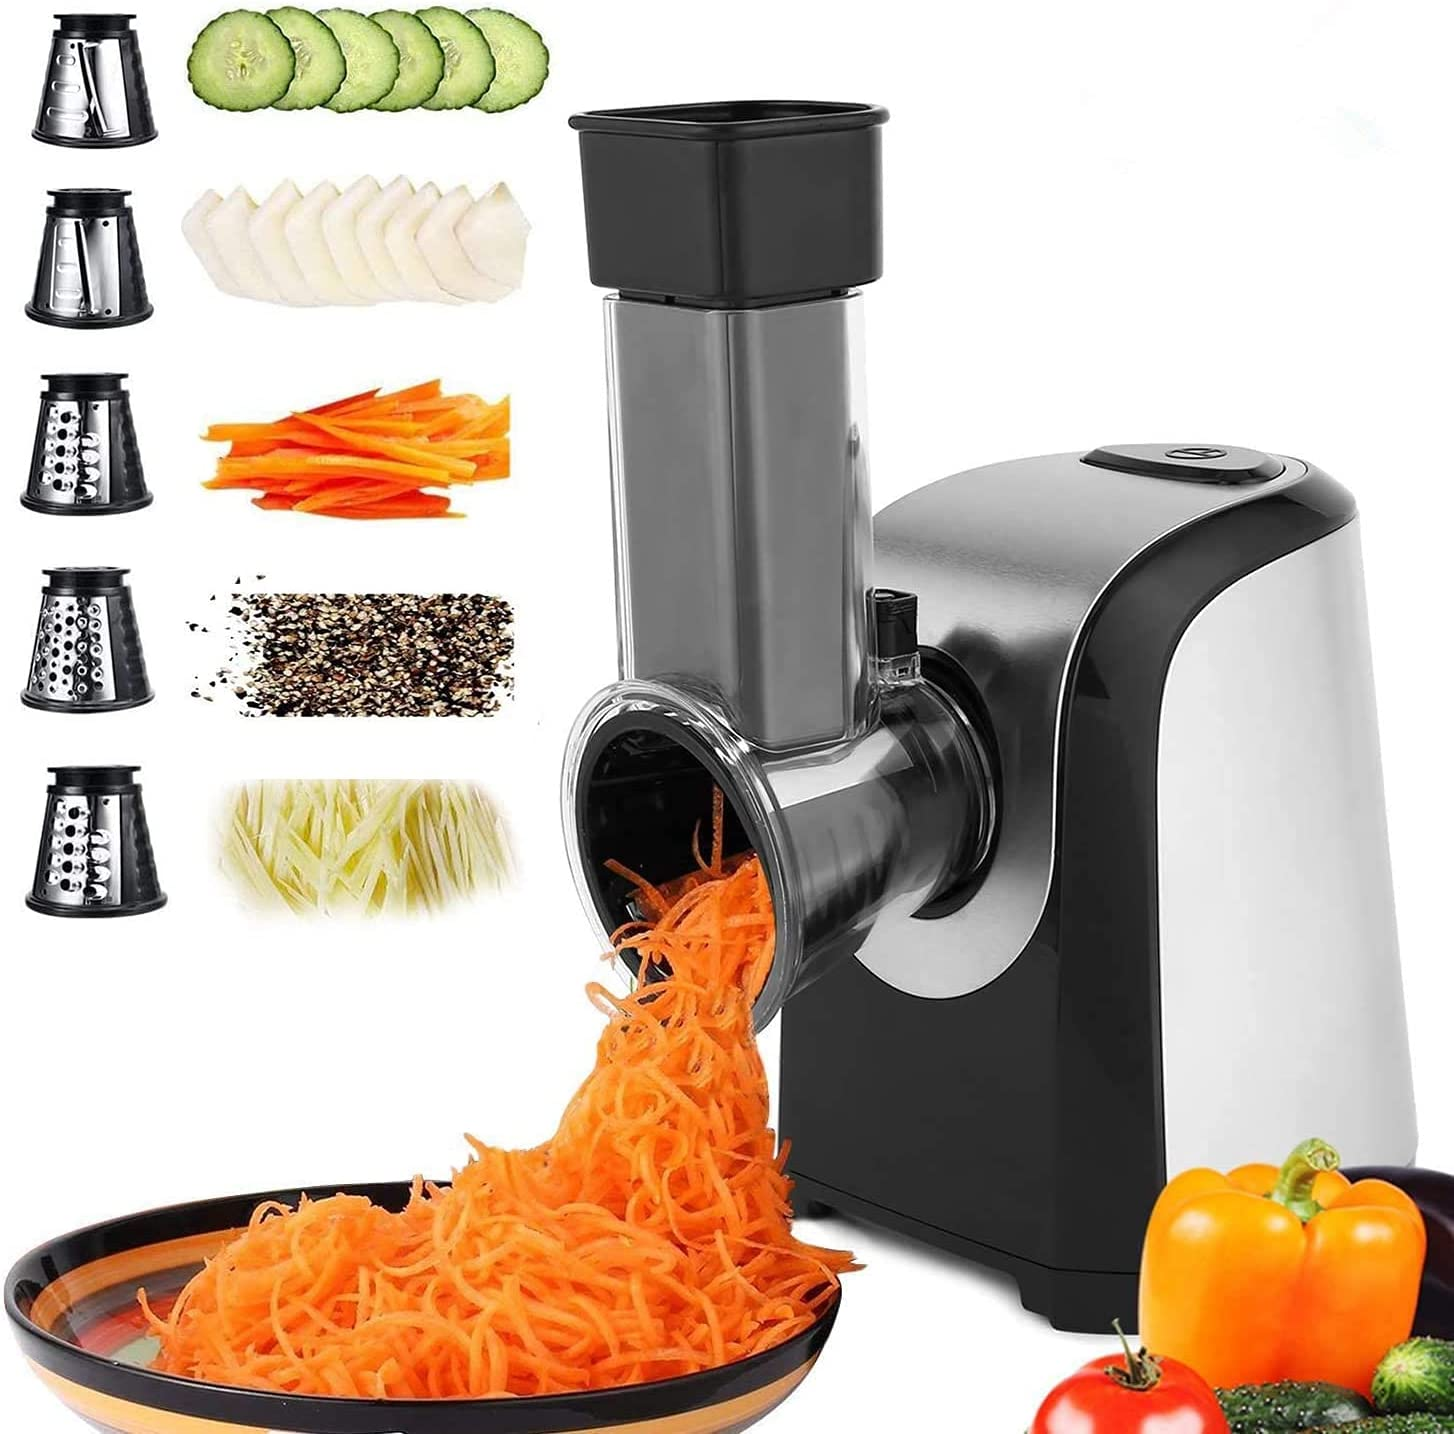 Salad machine Electric Spiralizer Vegetable Slicer Shredder Vegetable Cutter Cheese Grater for Home Kitchen Use with 5 Stainless Steel Rotary Blades(US Stock)